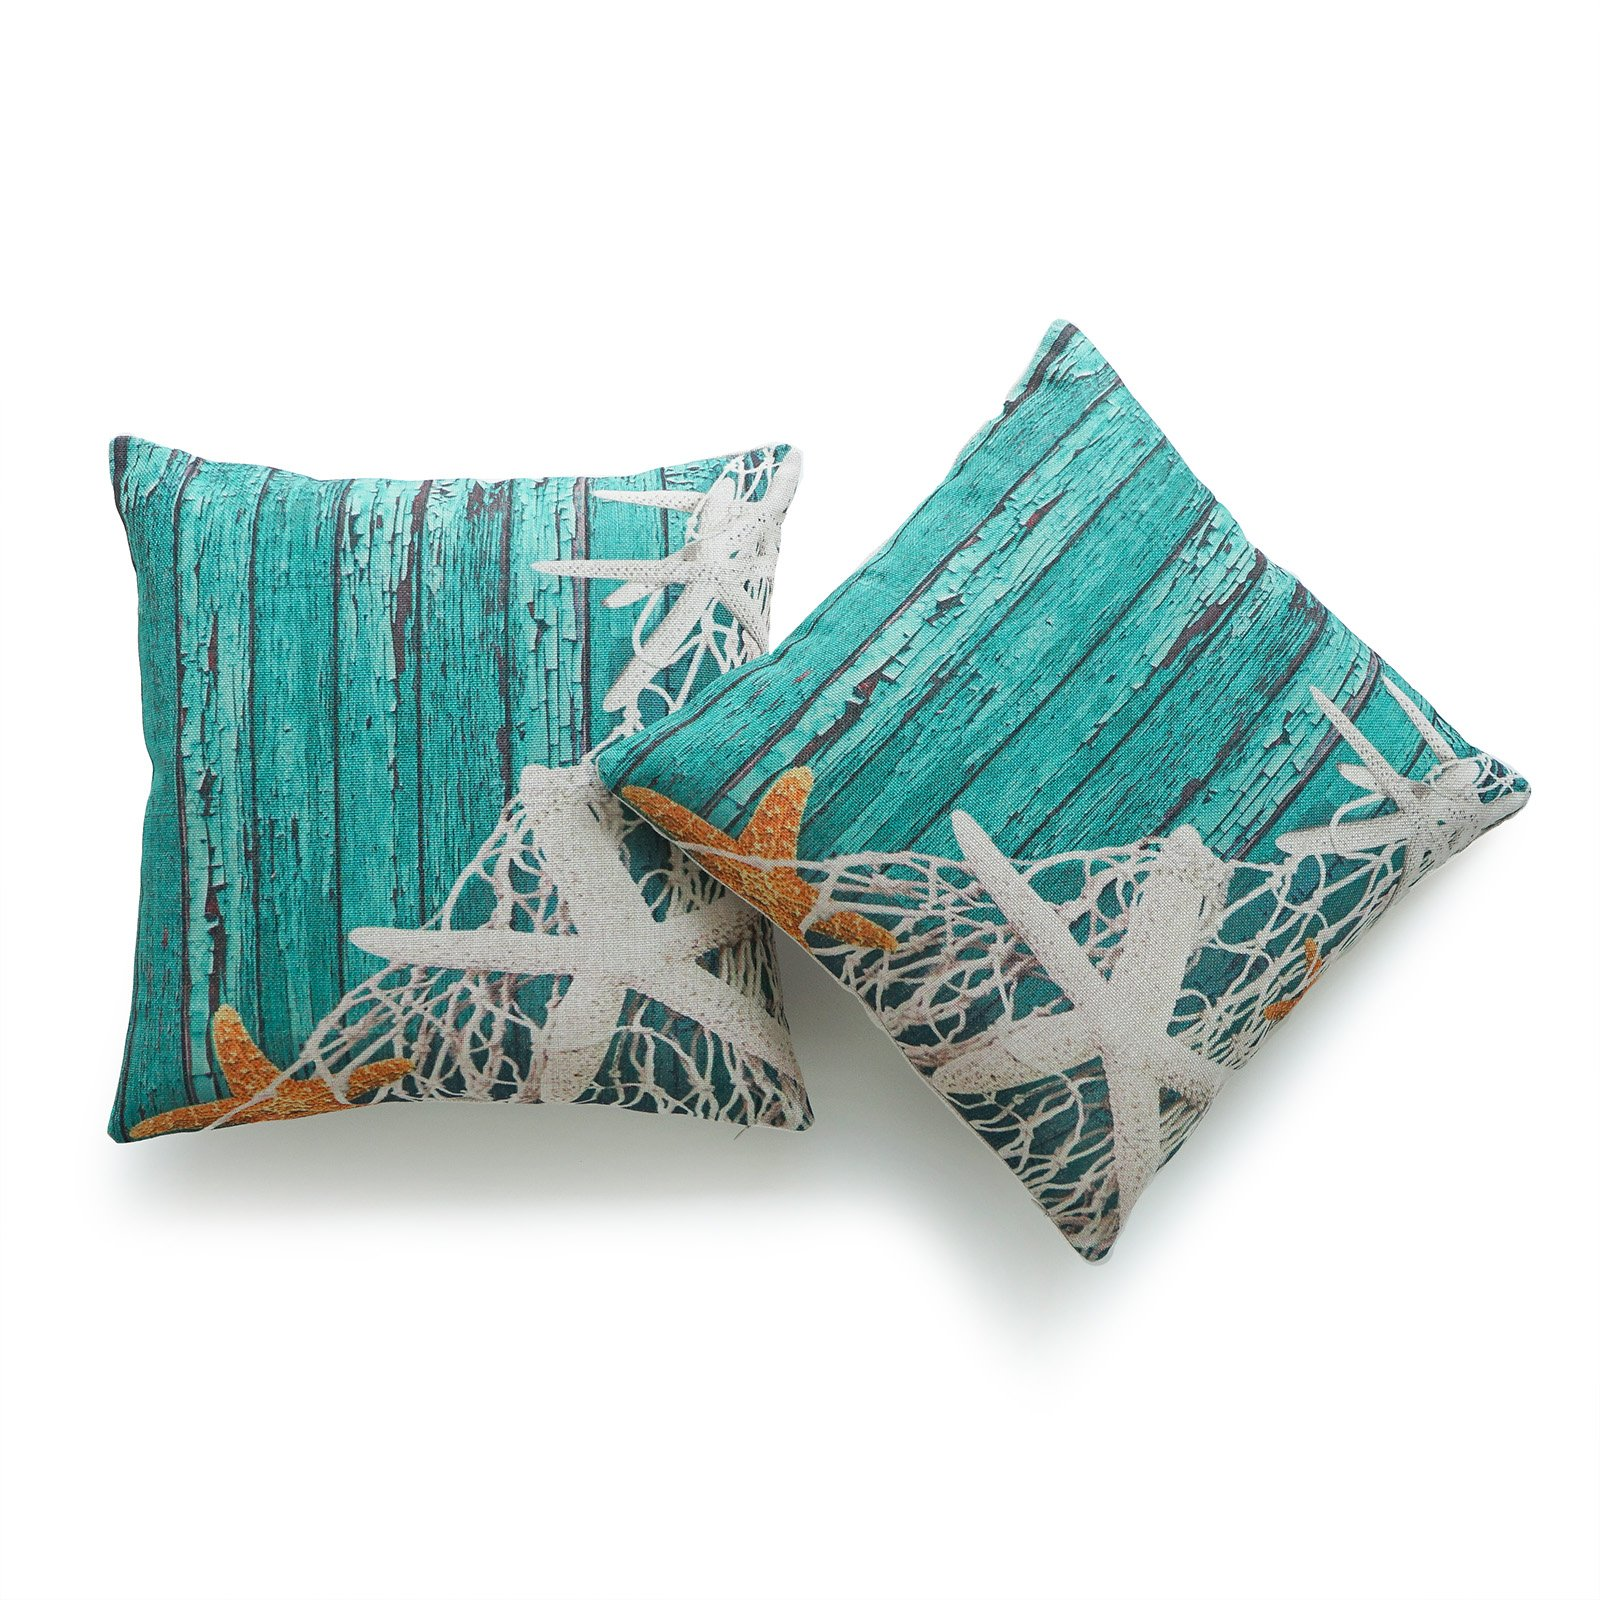 Hofdeco Decorative Throw Pillow Cover HEAVY WEIGHT Cotton Linen Vintage Sea Life Starfish Netting Beach Wood 18''x18'' 45cm x 45cm Set of 2